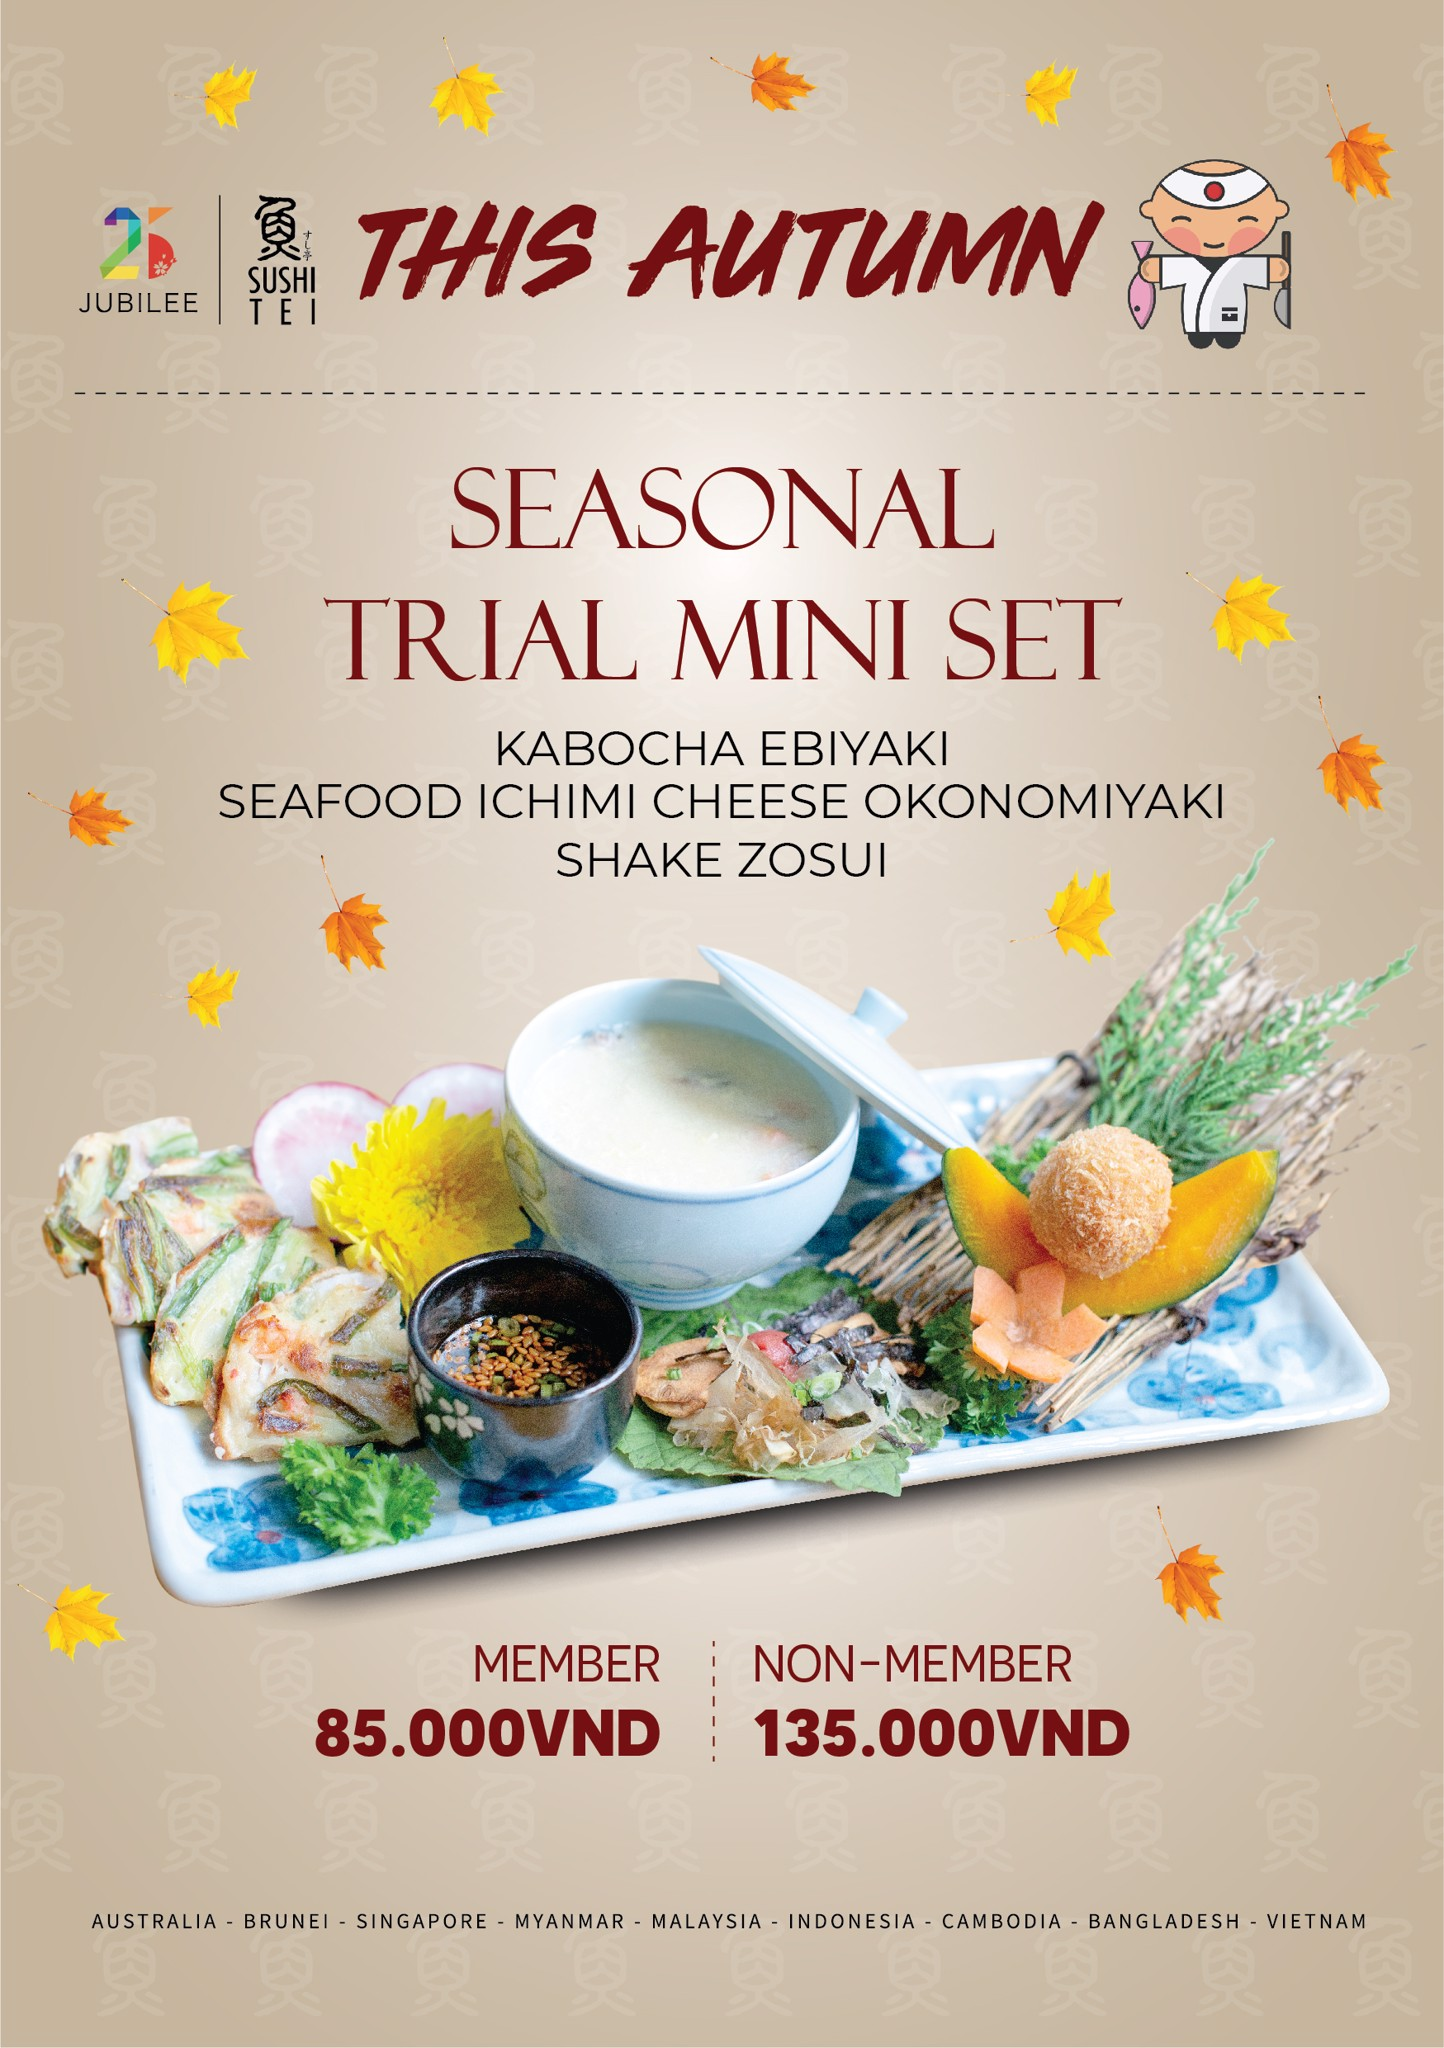 SEASONAL TRIAL MINI SET PROMOTION